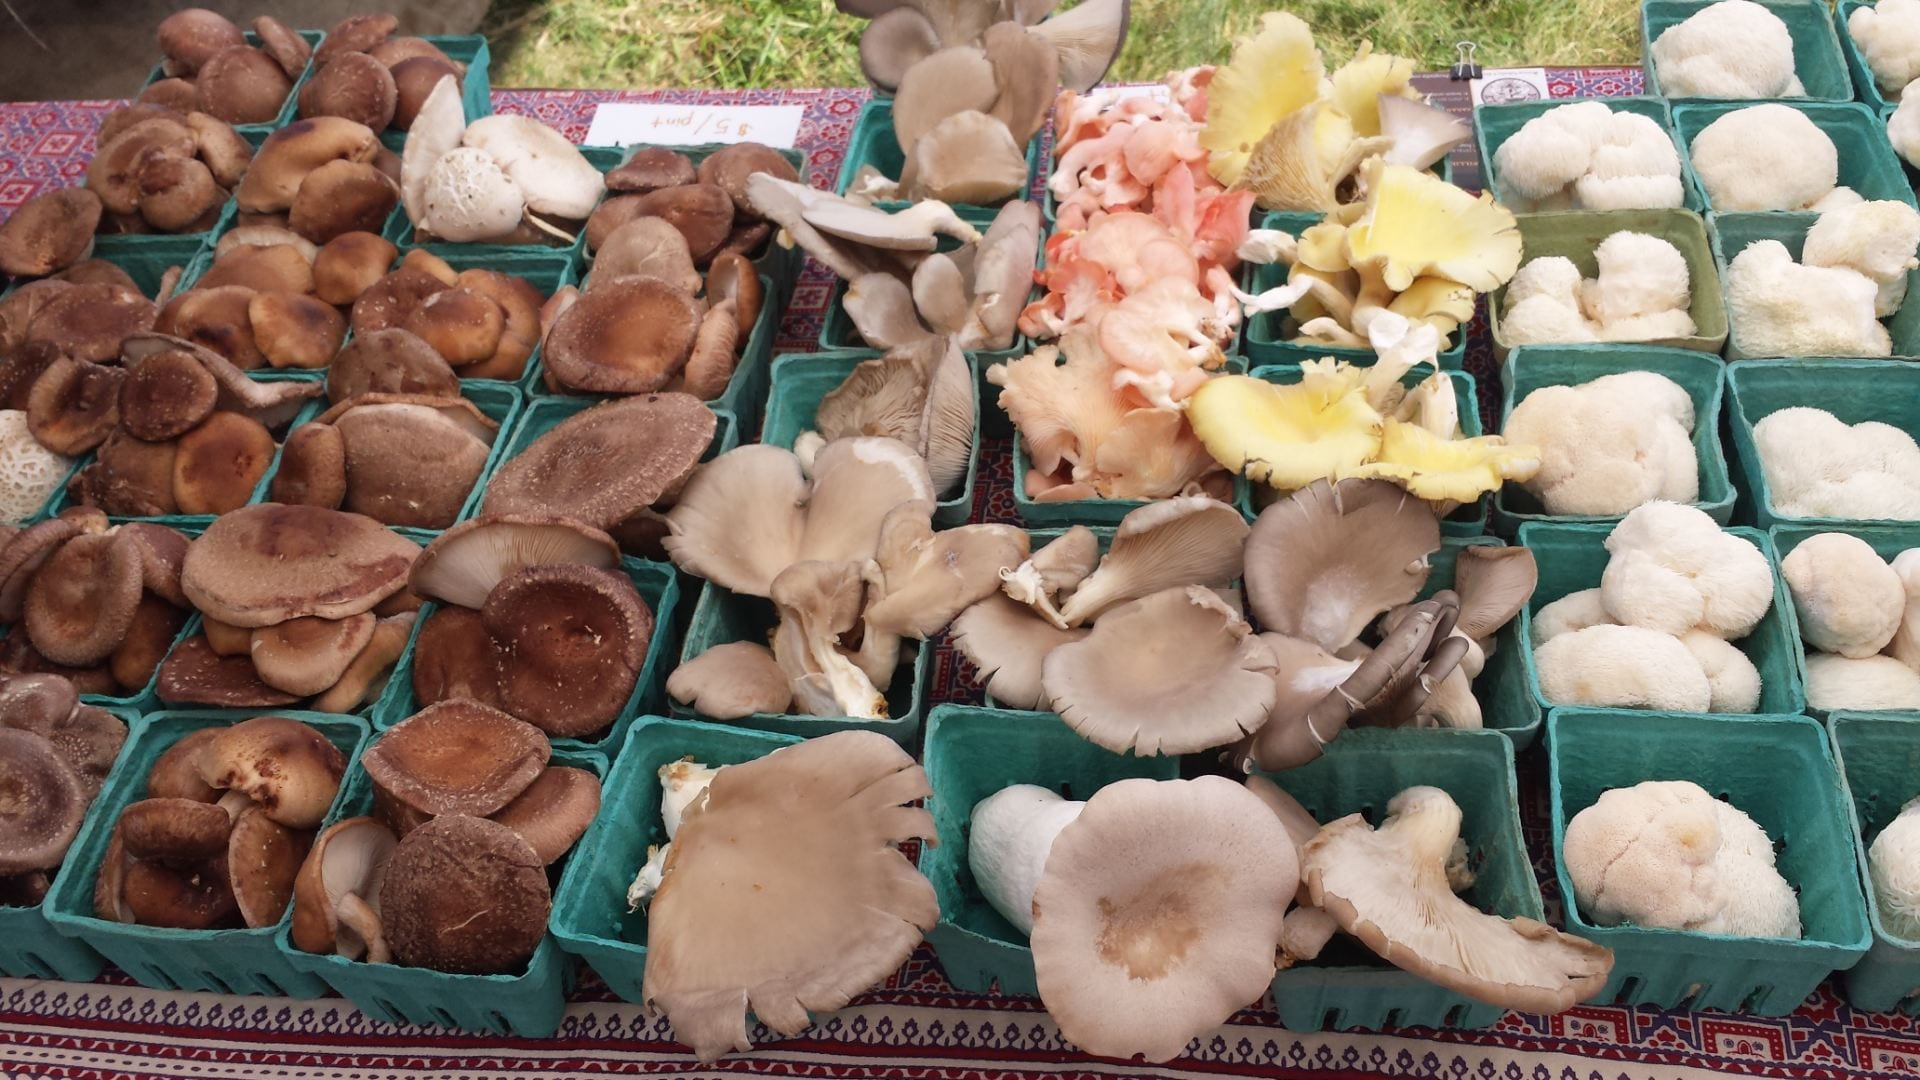 The Best Conditions for Growing Mushrooms